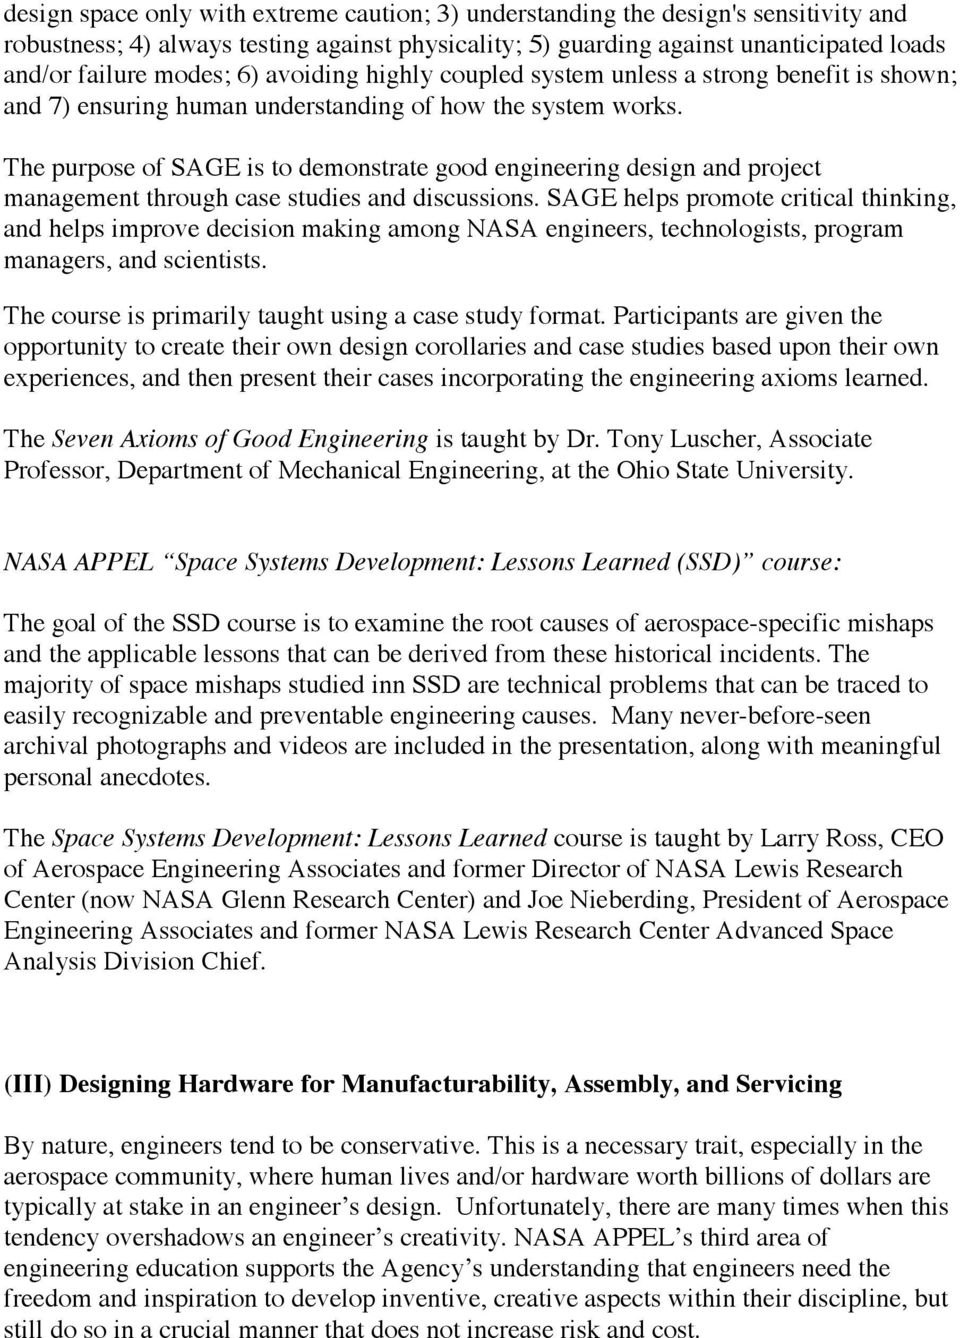 Unique Education & Workforce Development for NASA Engineers - PDF